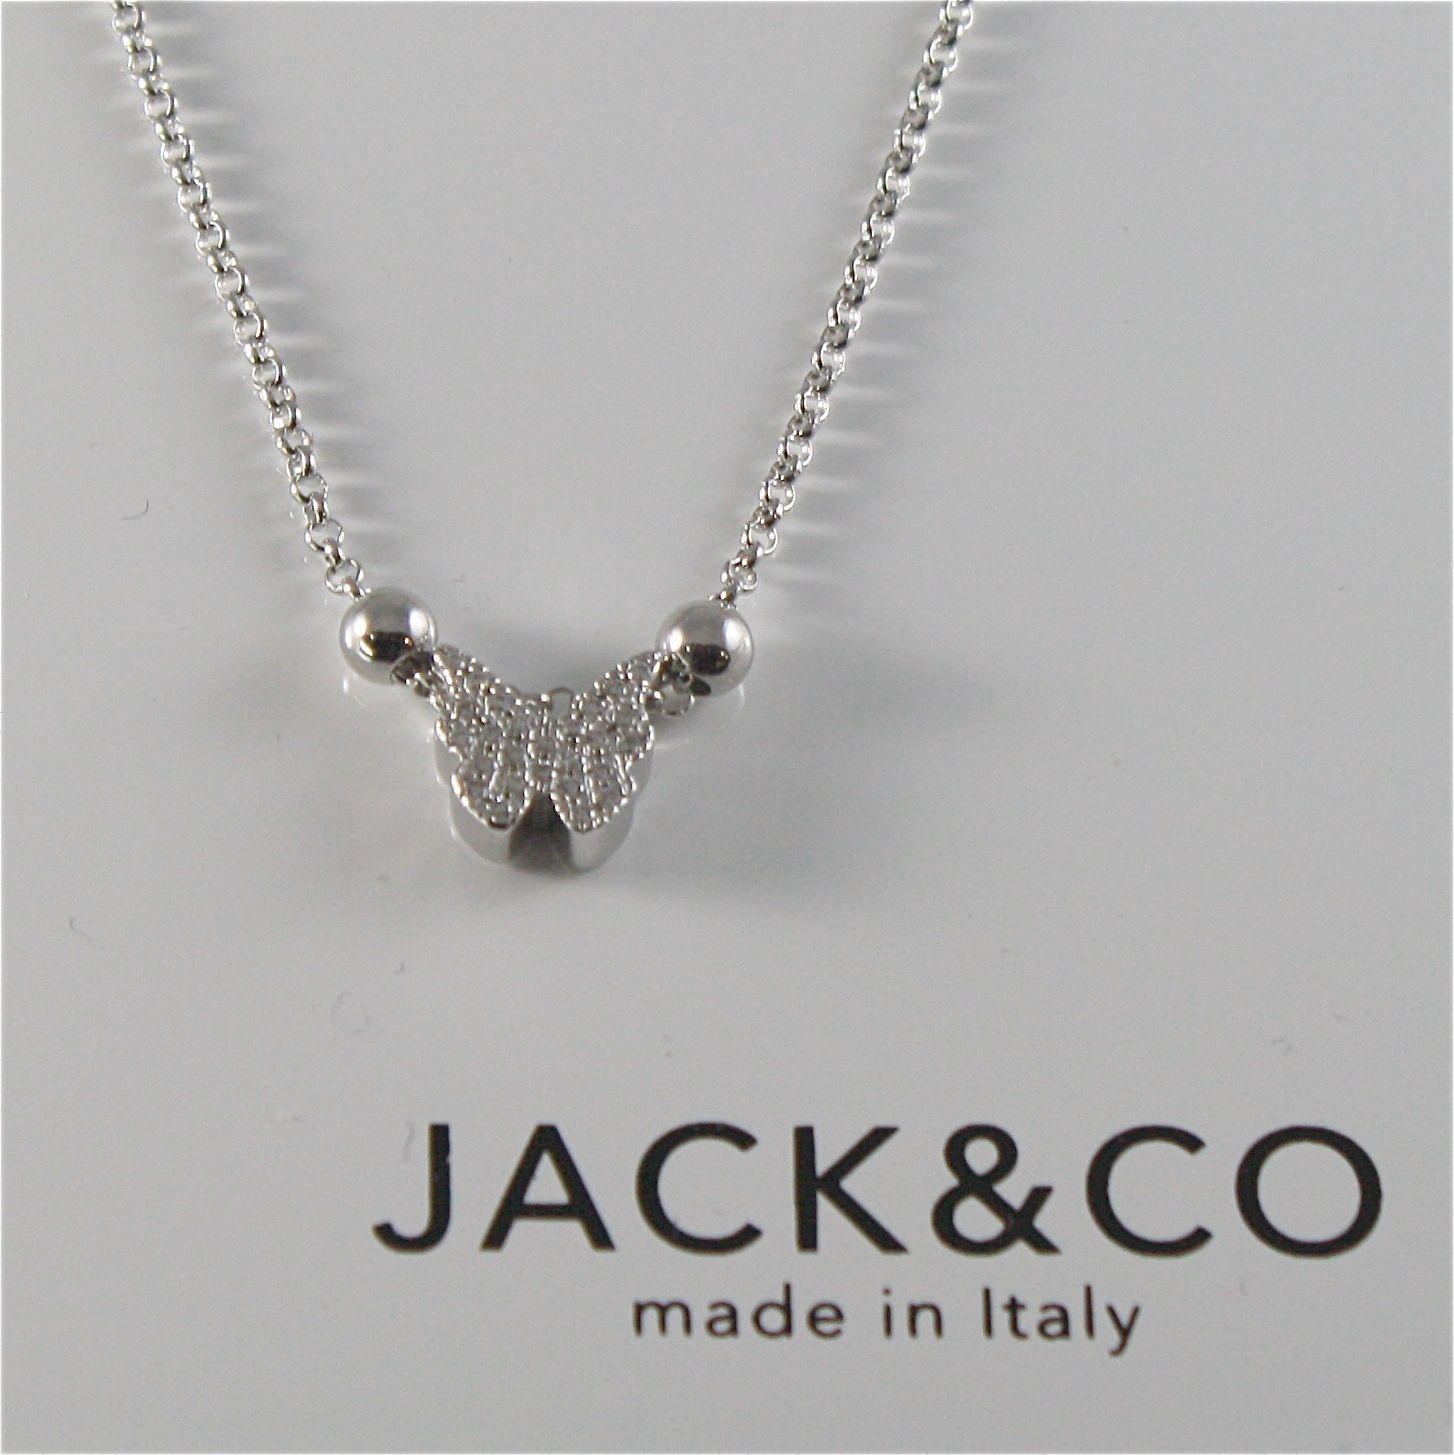 CHAIN TO RINGS 925 SILVER JACK&CO WITH BUTTERFLY WITH ZIRCON JCN0525